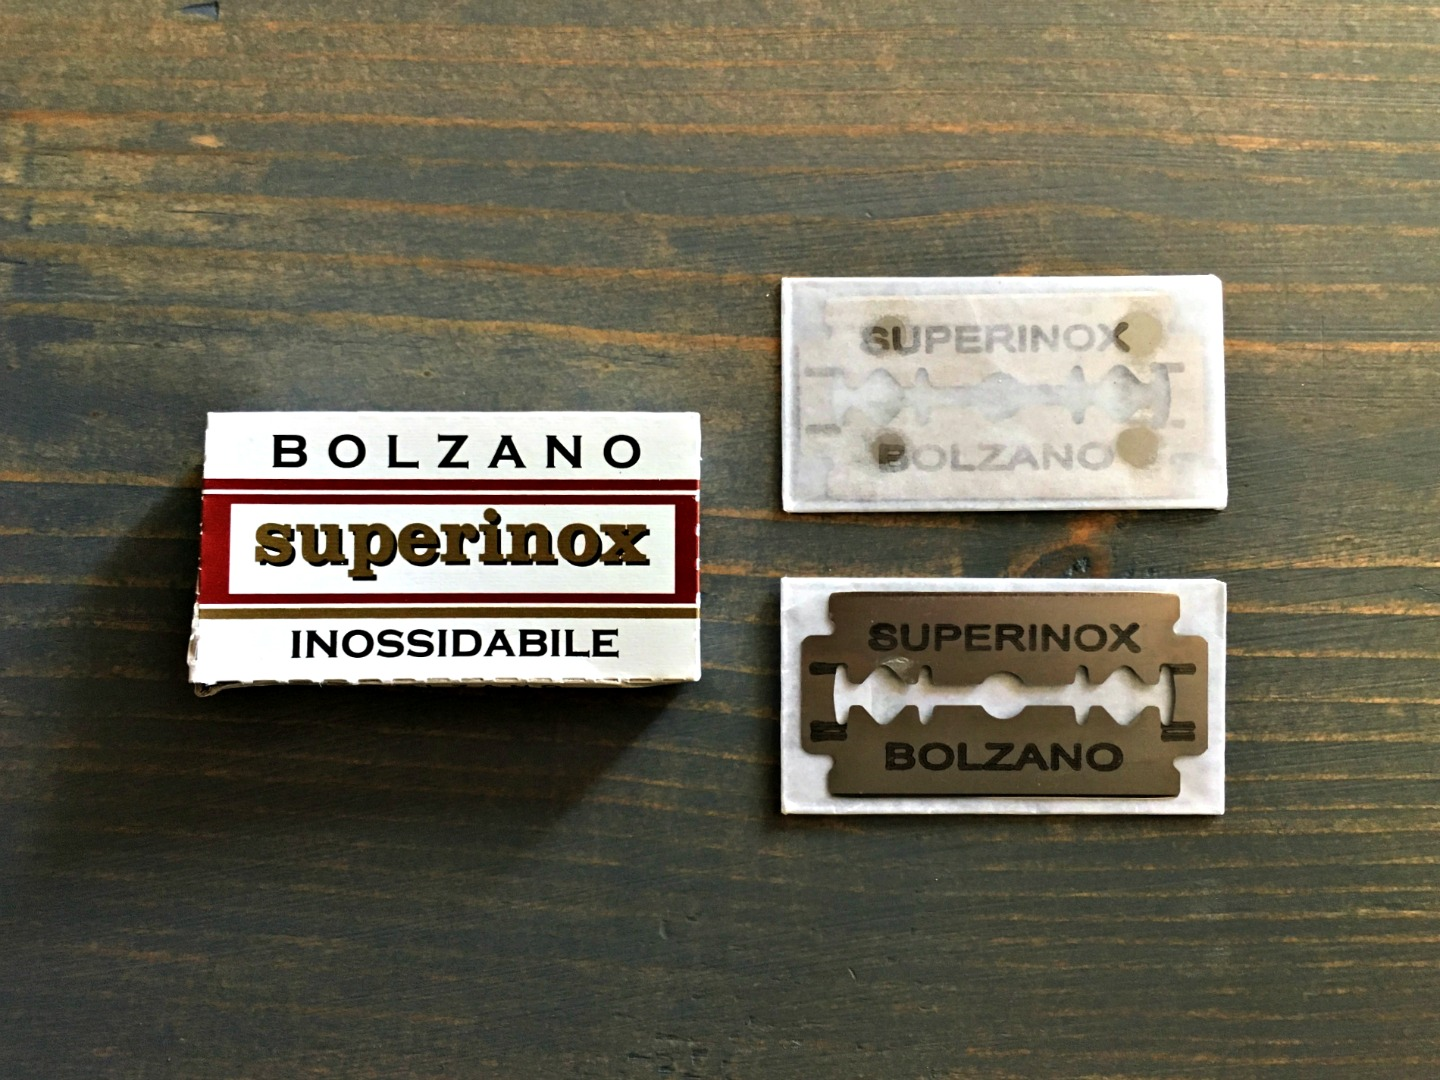 Bolzano Superinox Inossidabile Razor Blade Review